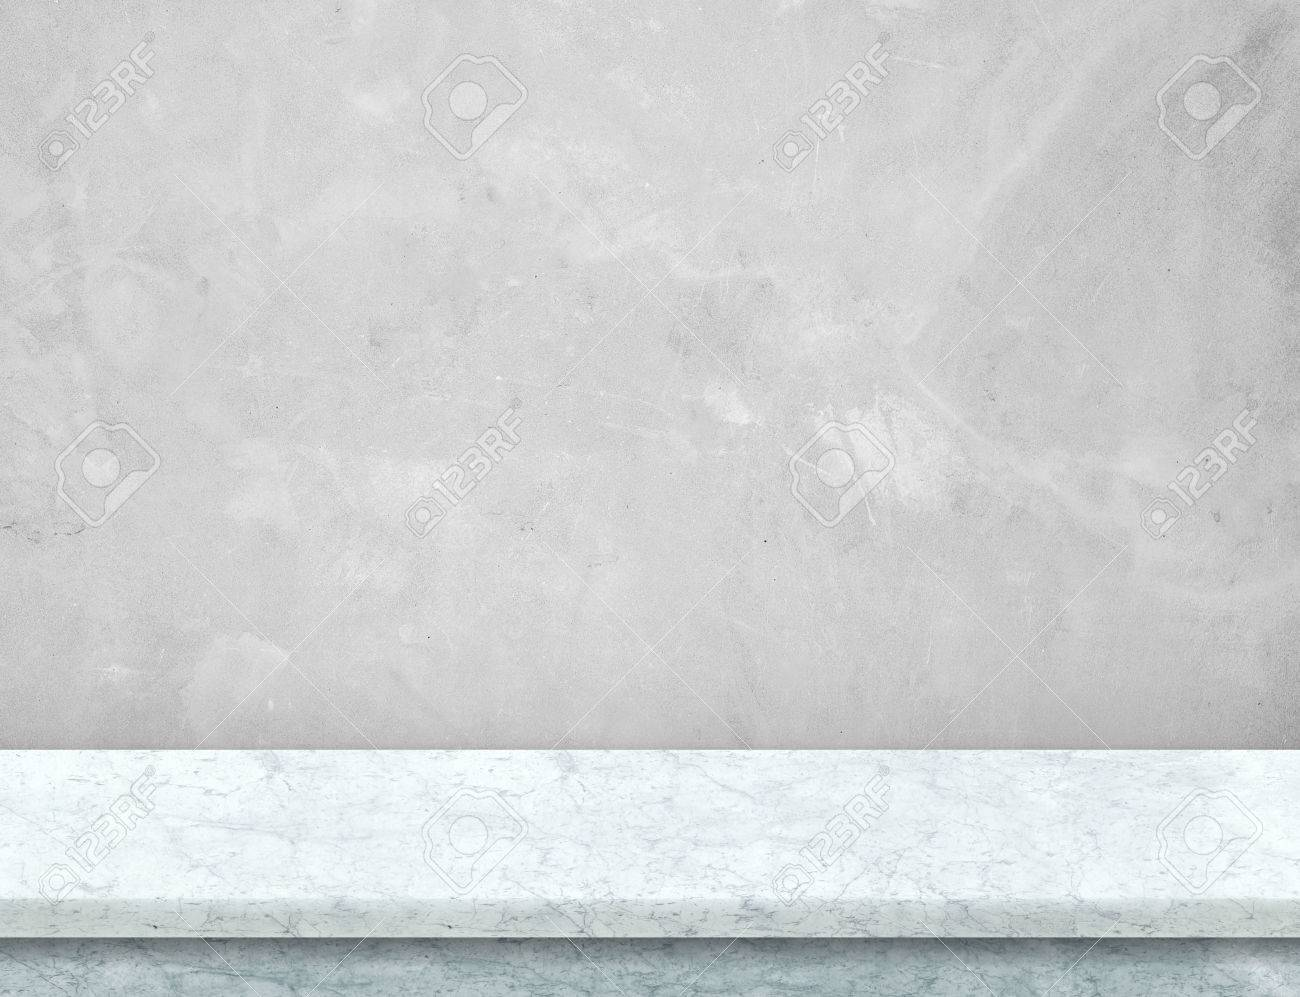 Empty whtie marble table top with grey concrete wall,Mock up for display or montage of product,use as background. - 70672259